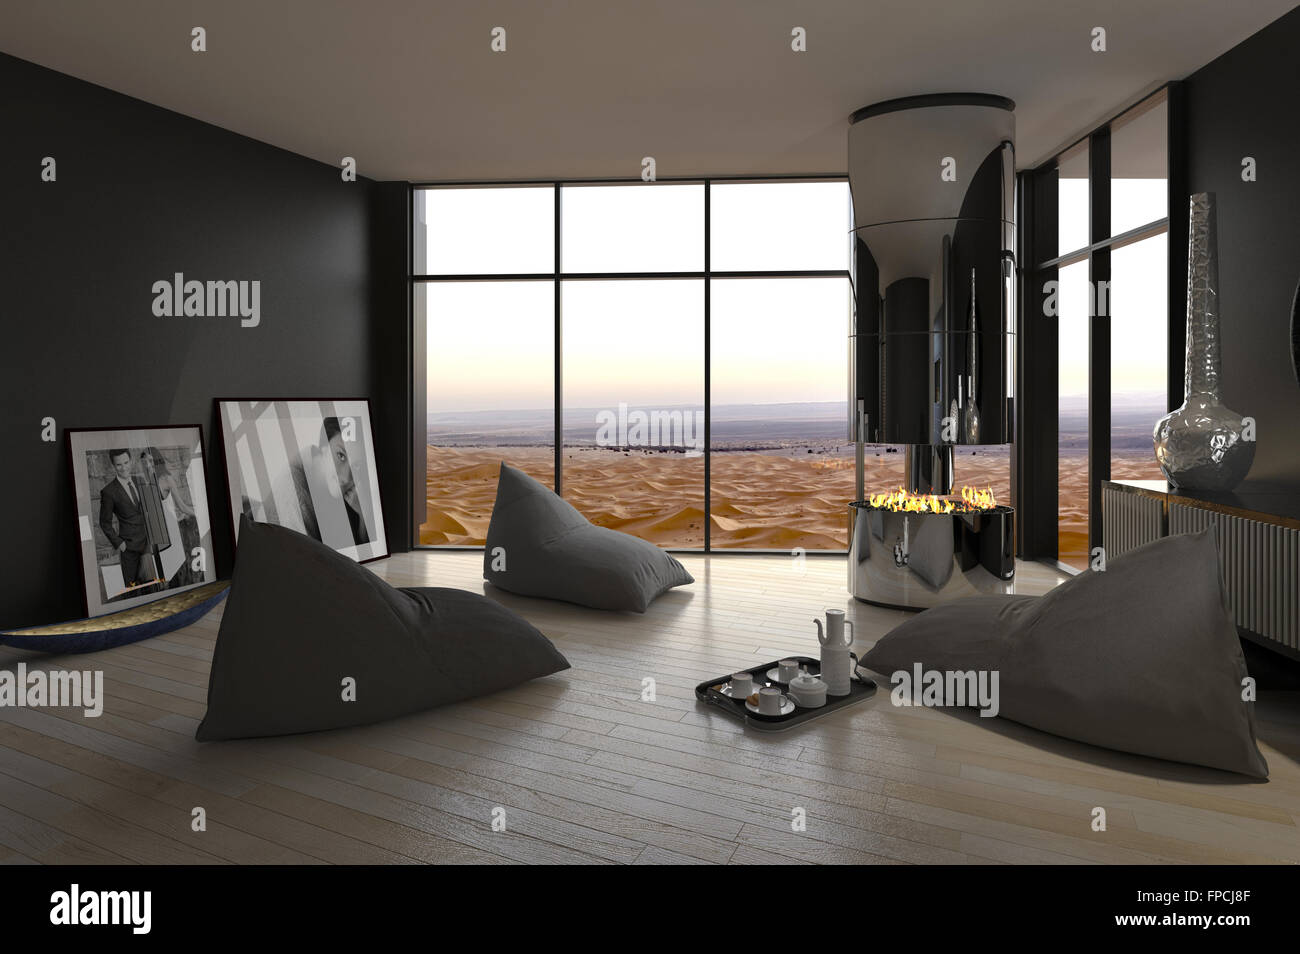 Elegant Informal Living Room Interior With Bean Bags For Seating Arranged Around An  Open Chimney On A Wooden Parquet Floor With Grey Walls And A Large View  Window